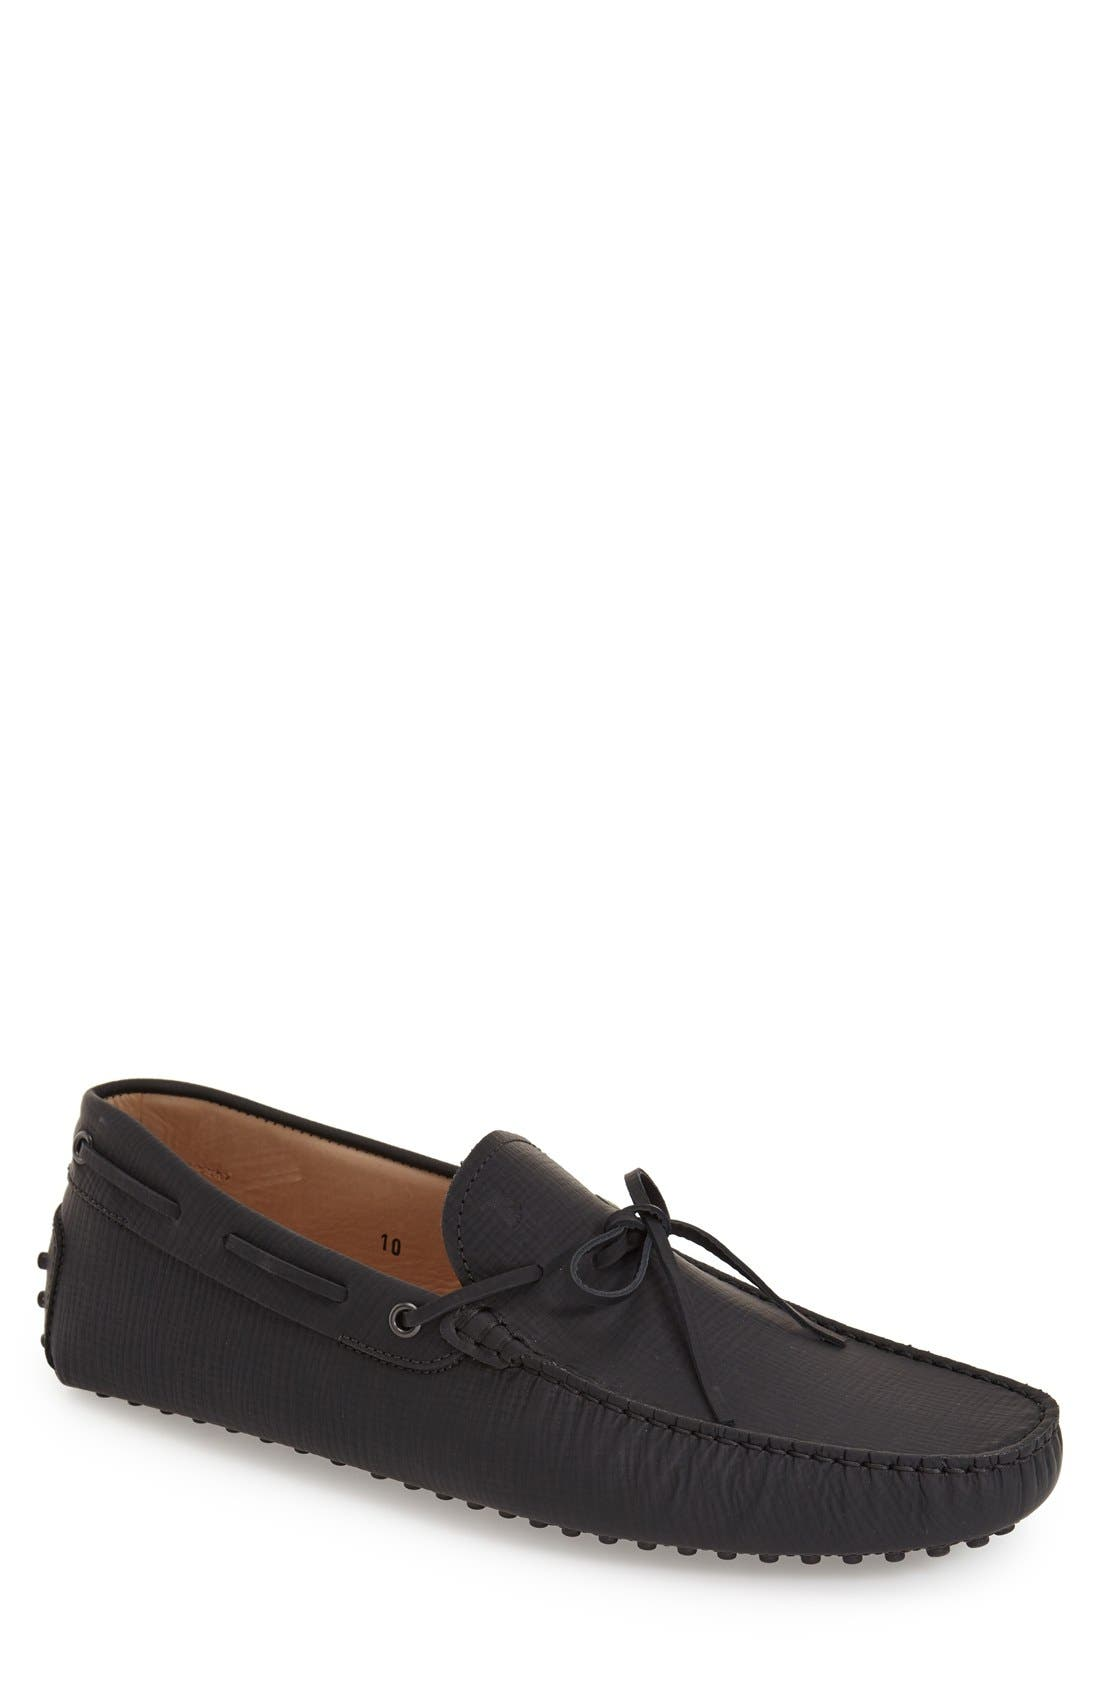 Gommini Tie Front Driving Moccasin,                         Main,                         color,